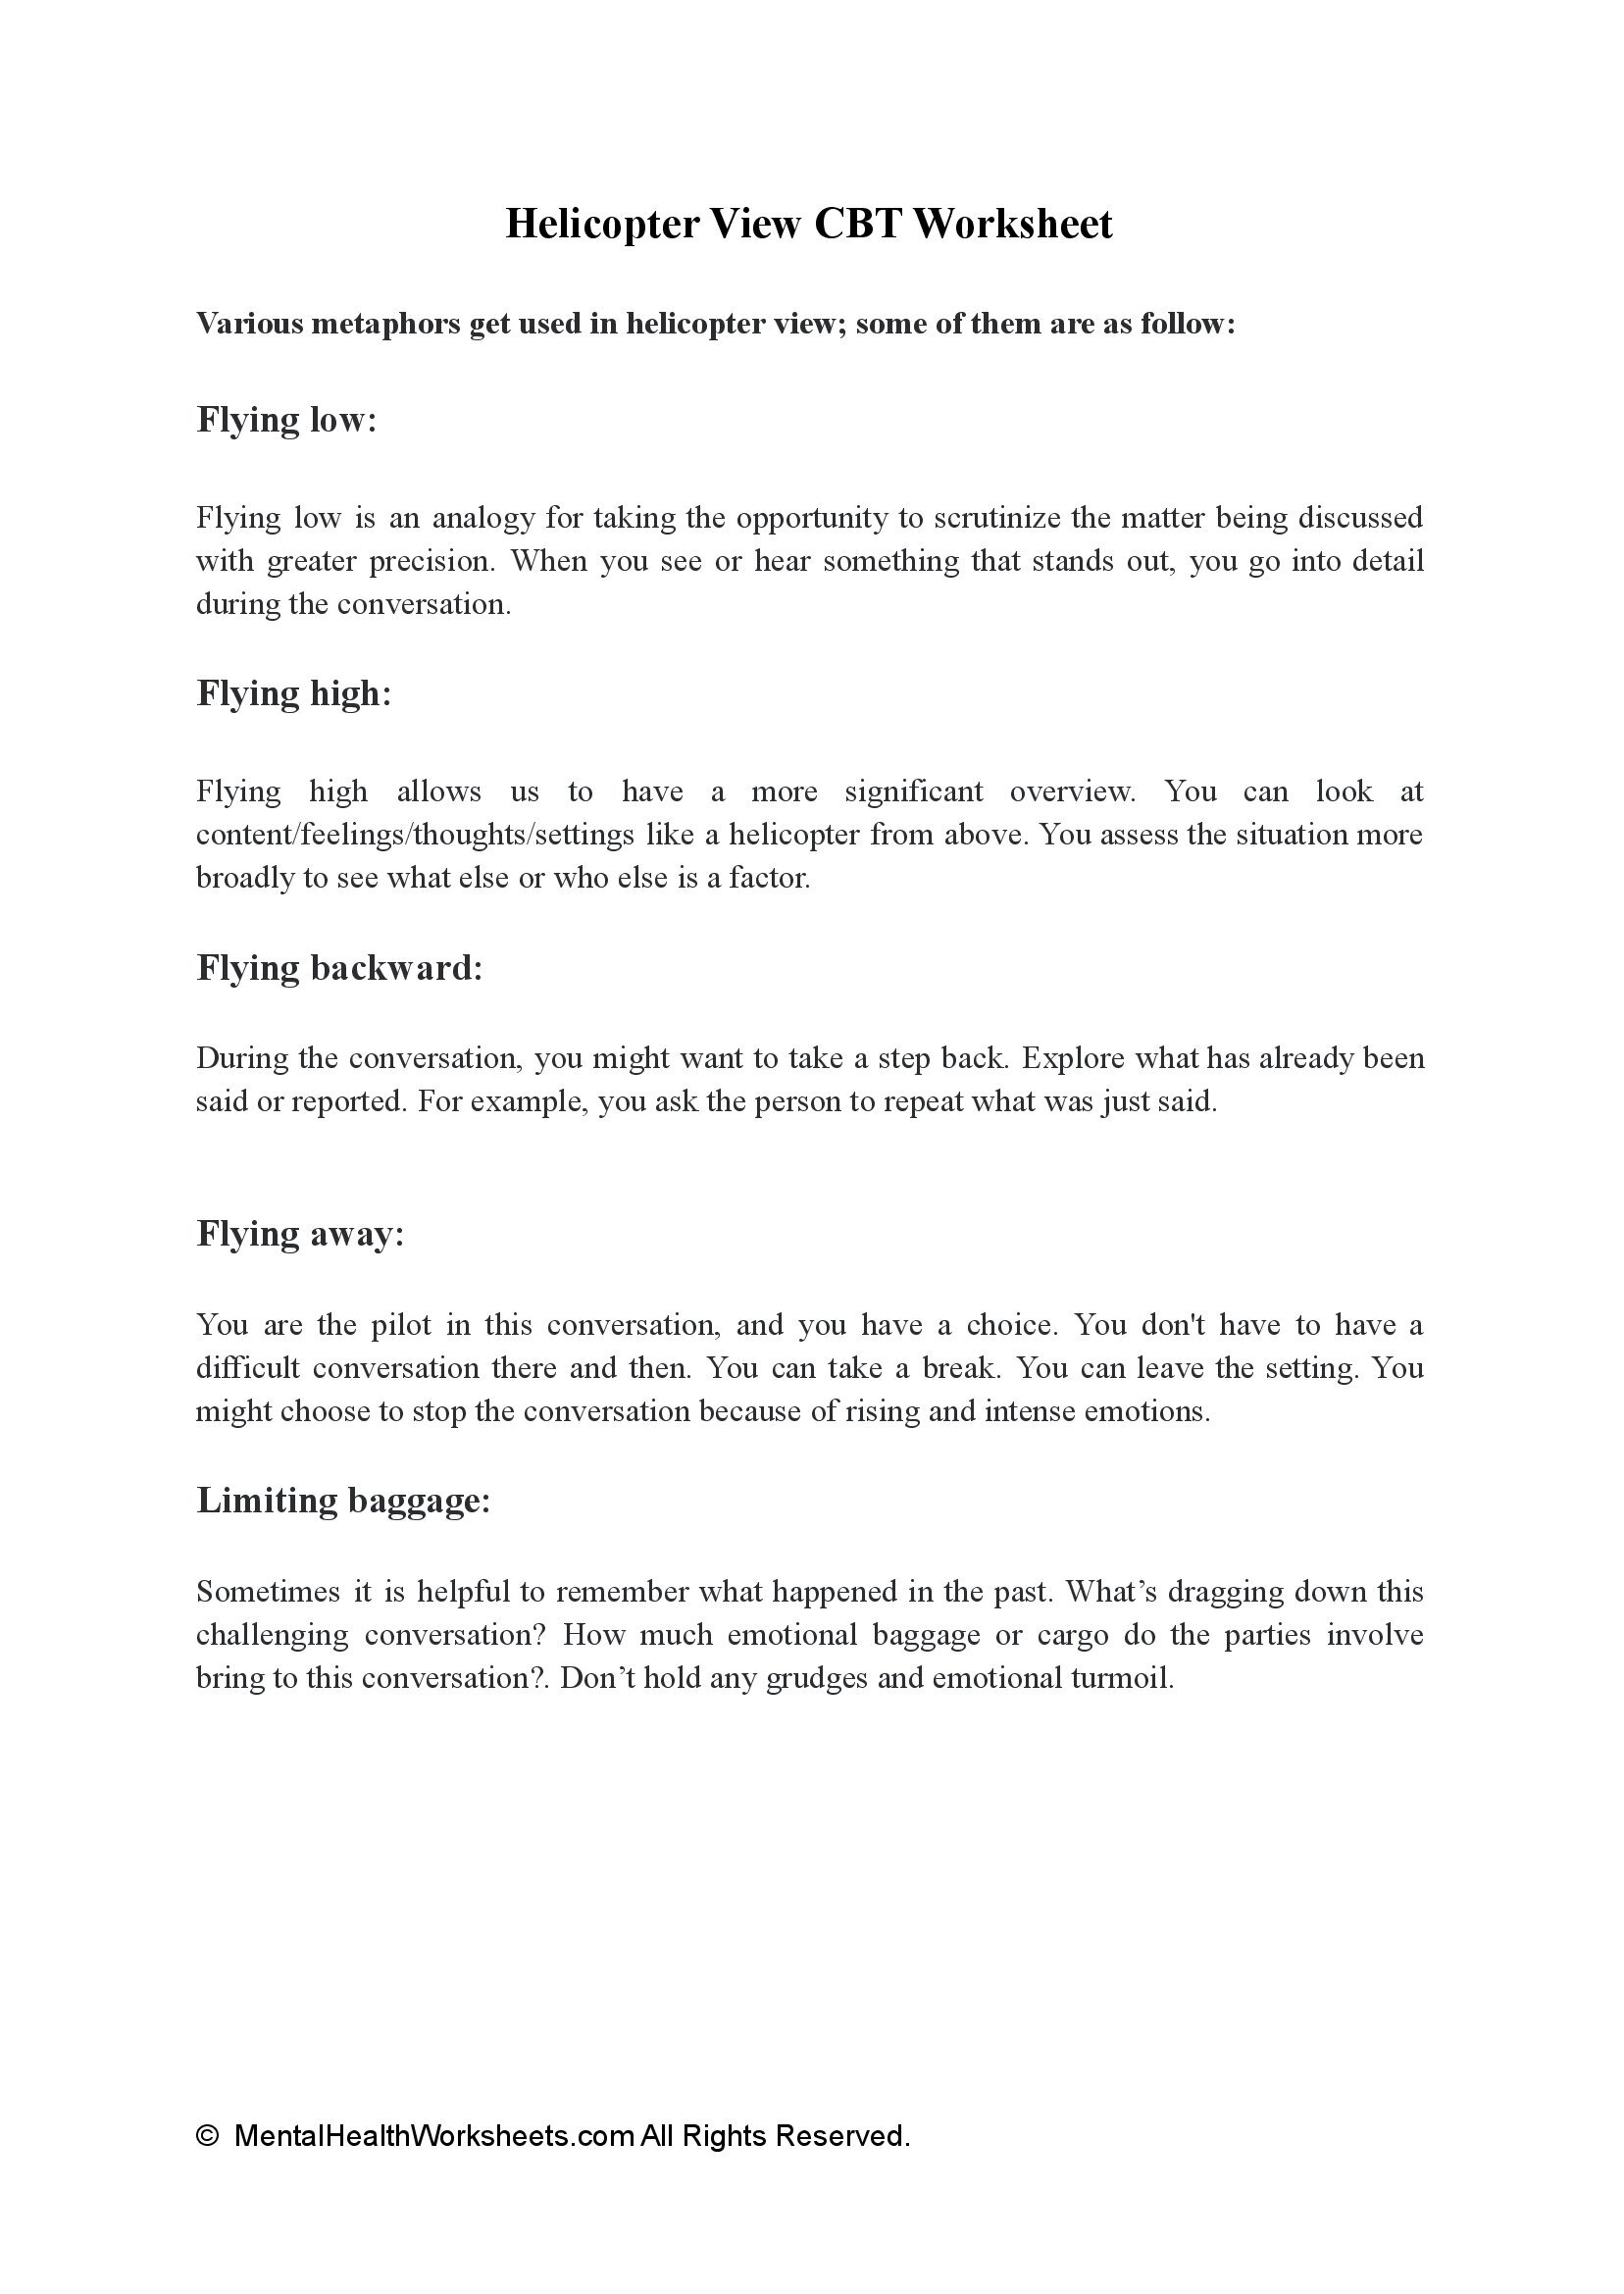 Helicopter View CBT Worksheet